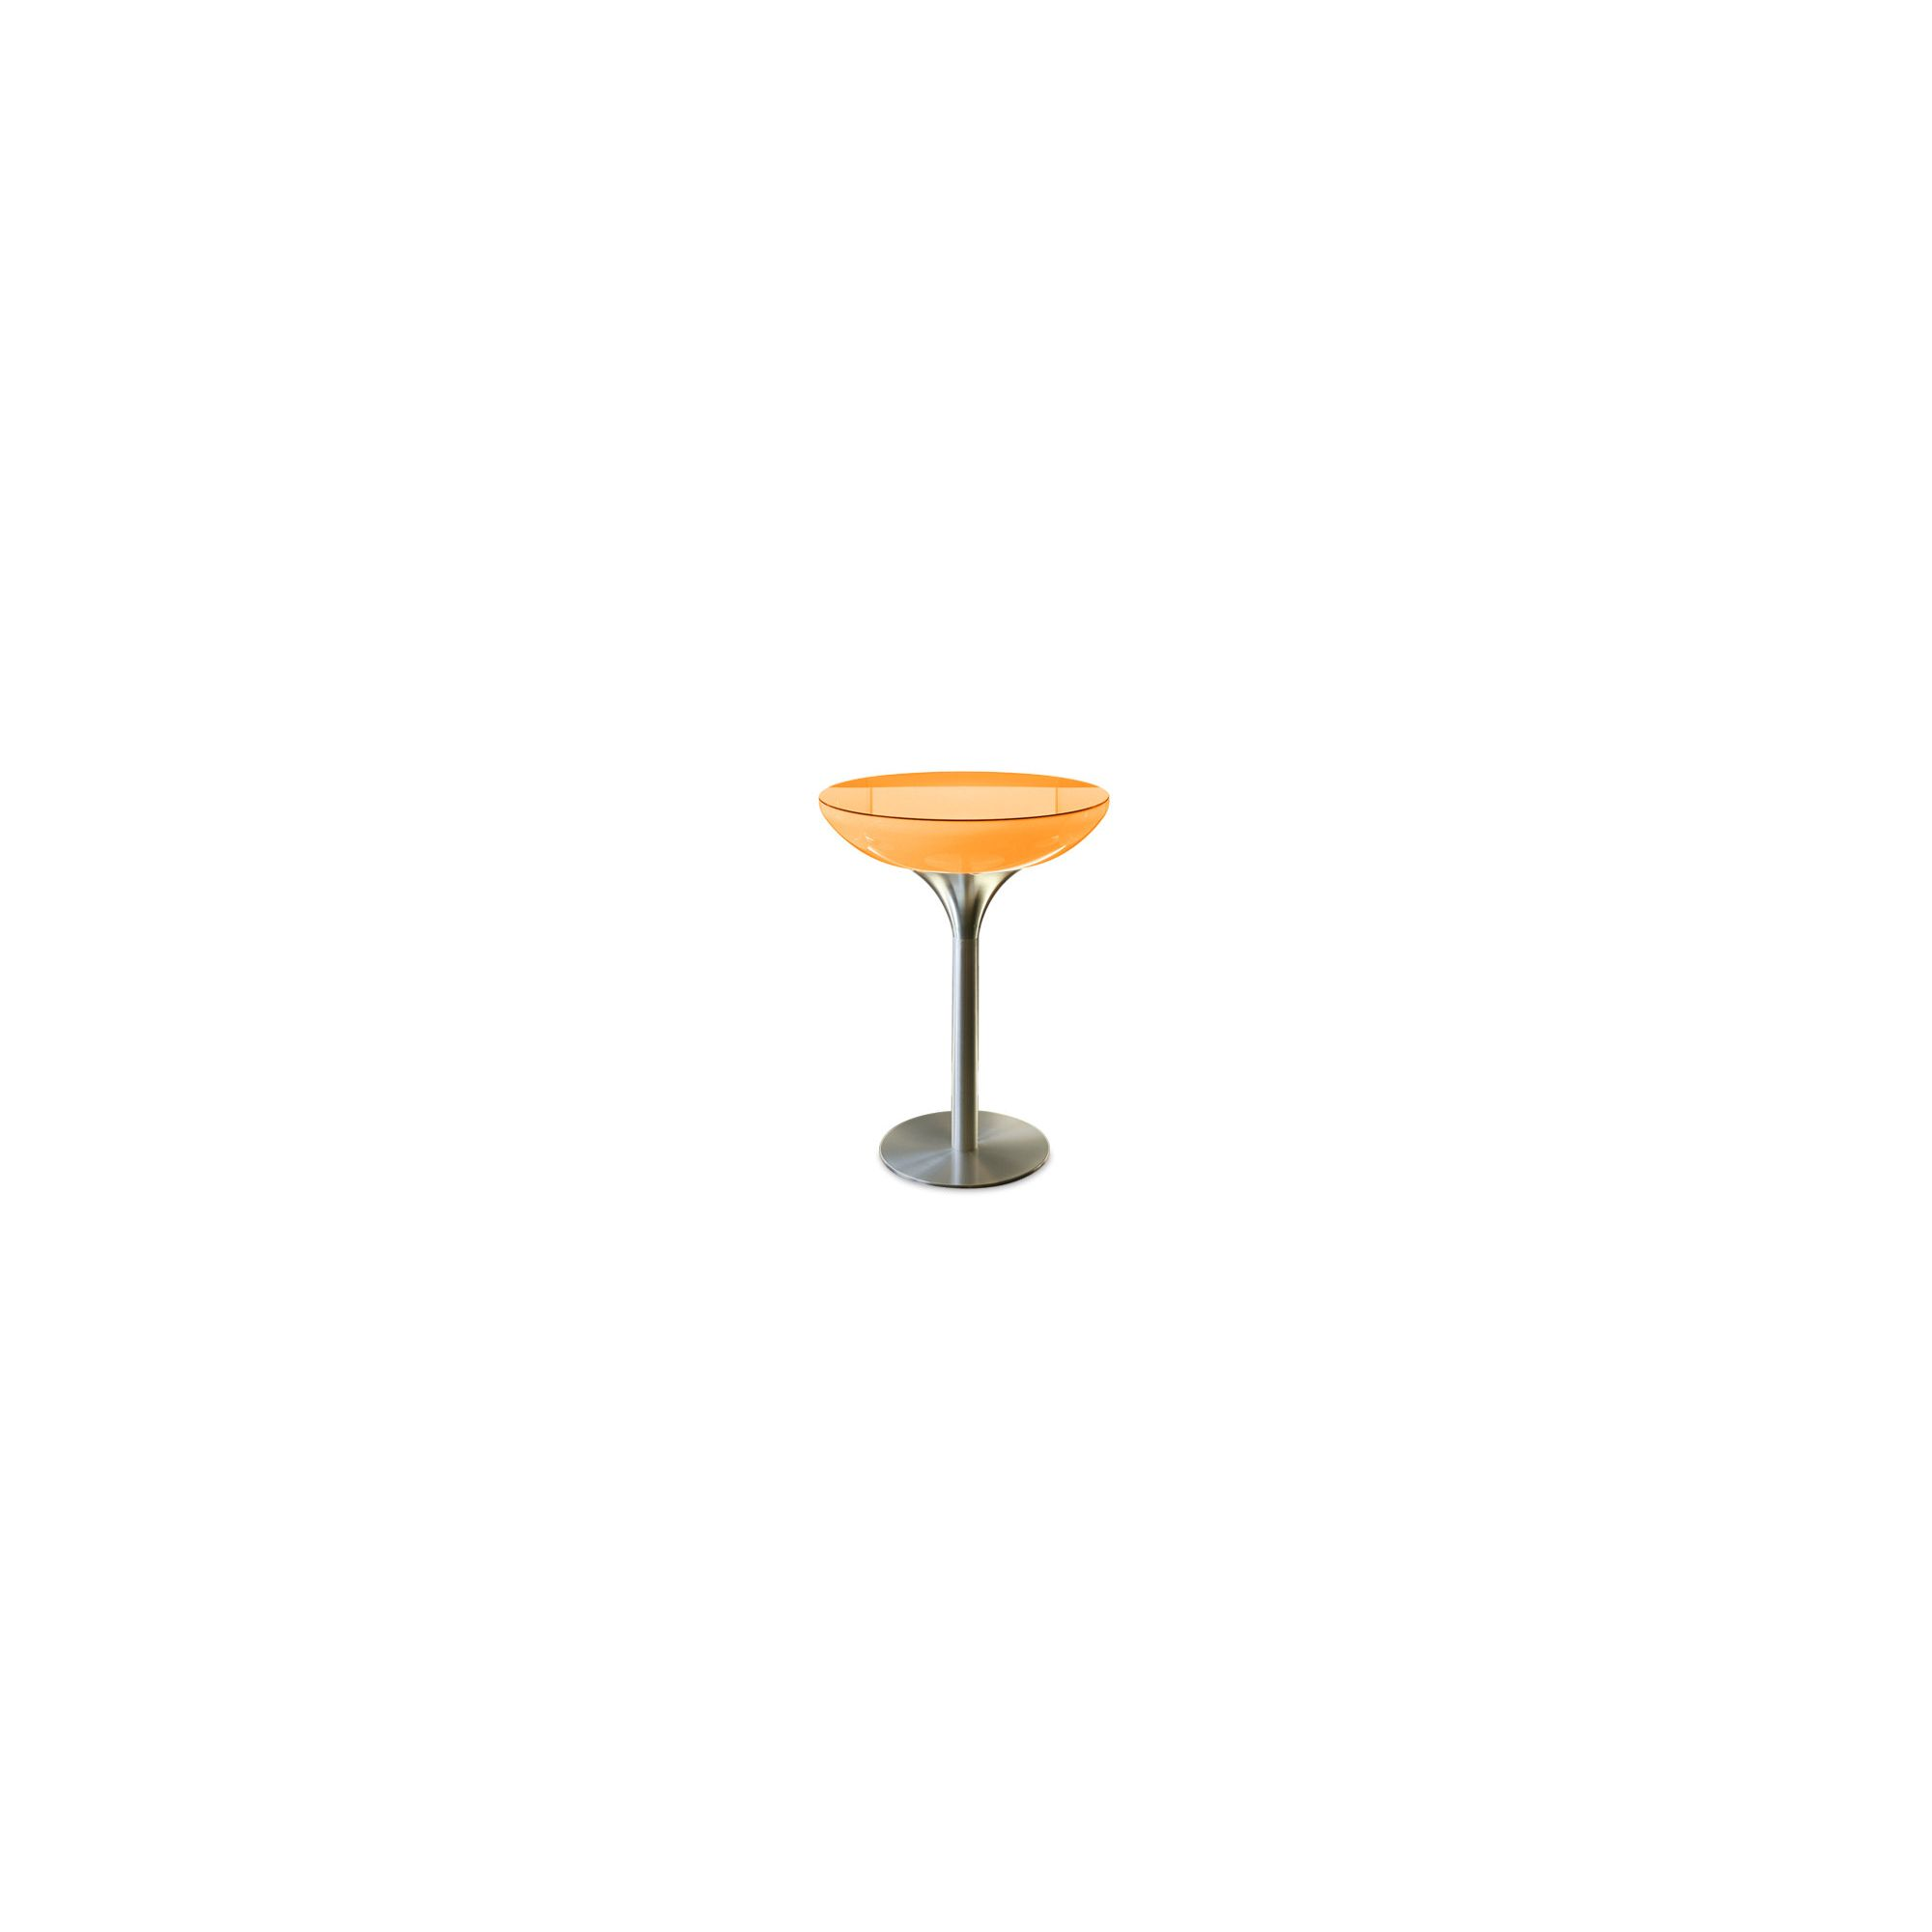 Moree Lounge Pro Table with Glass Top - 105cm at Tesco Direct